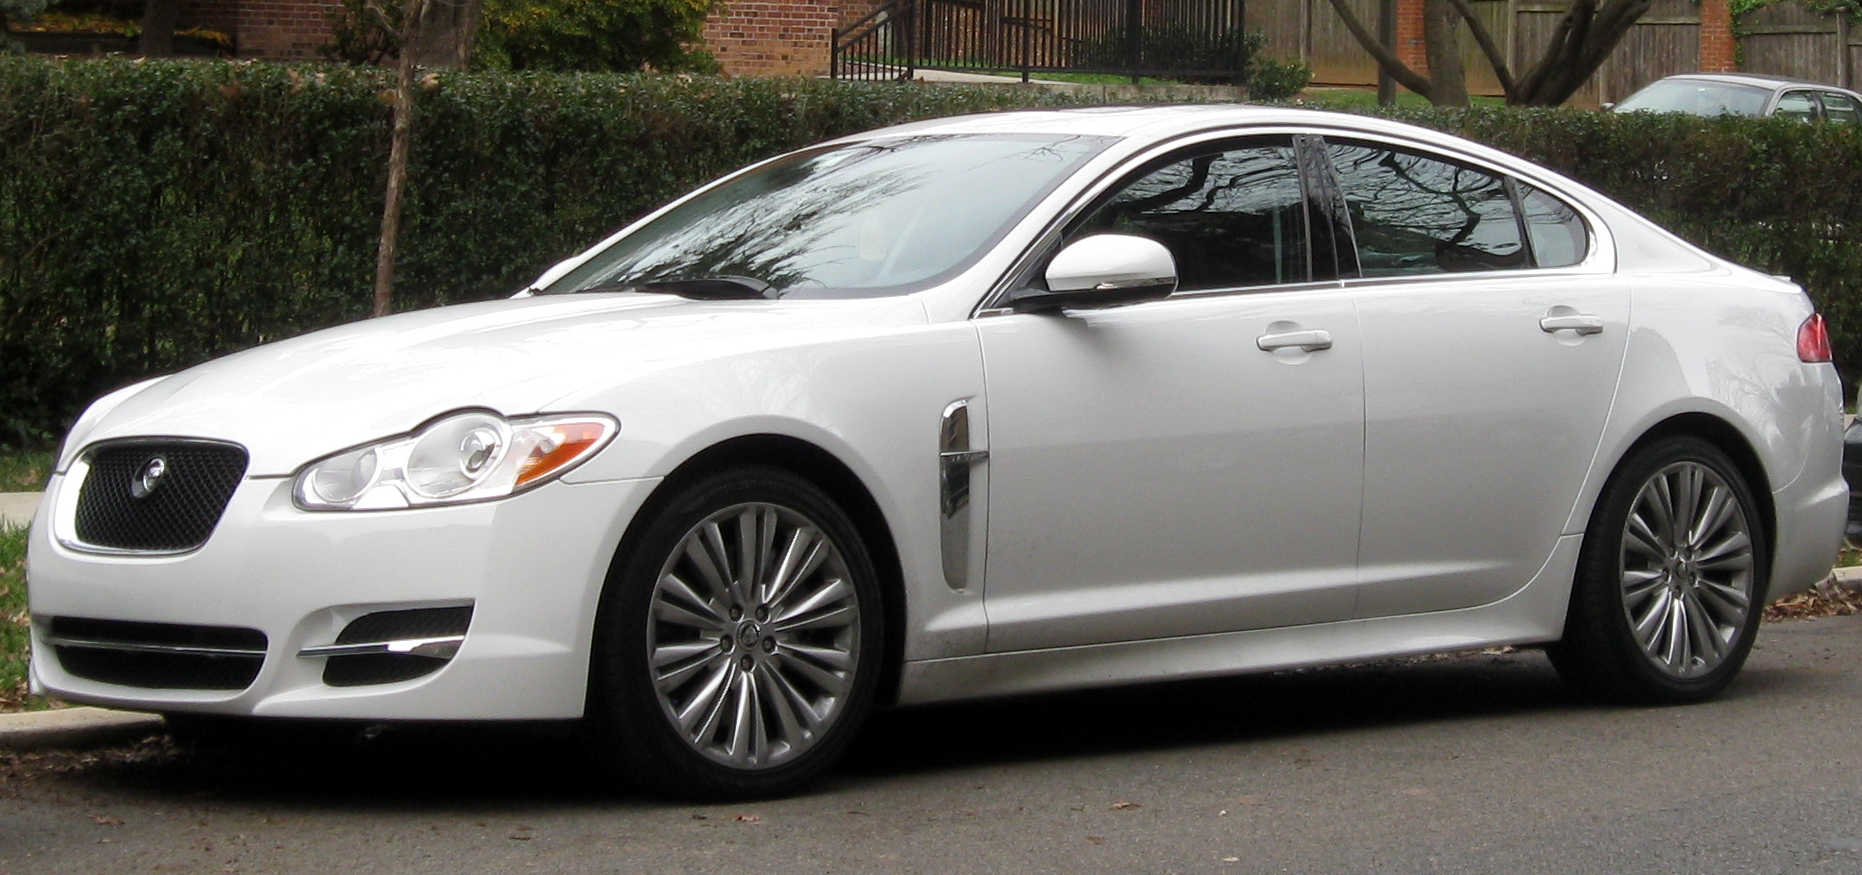 File:Jaguar XF    11 26 2011